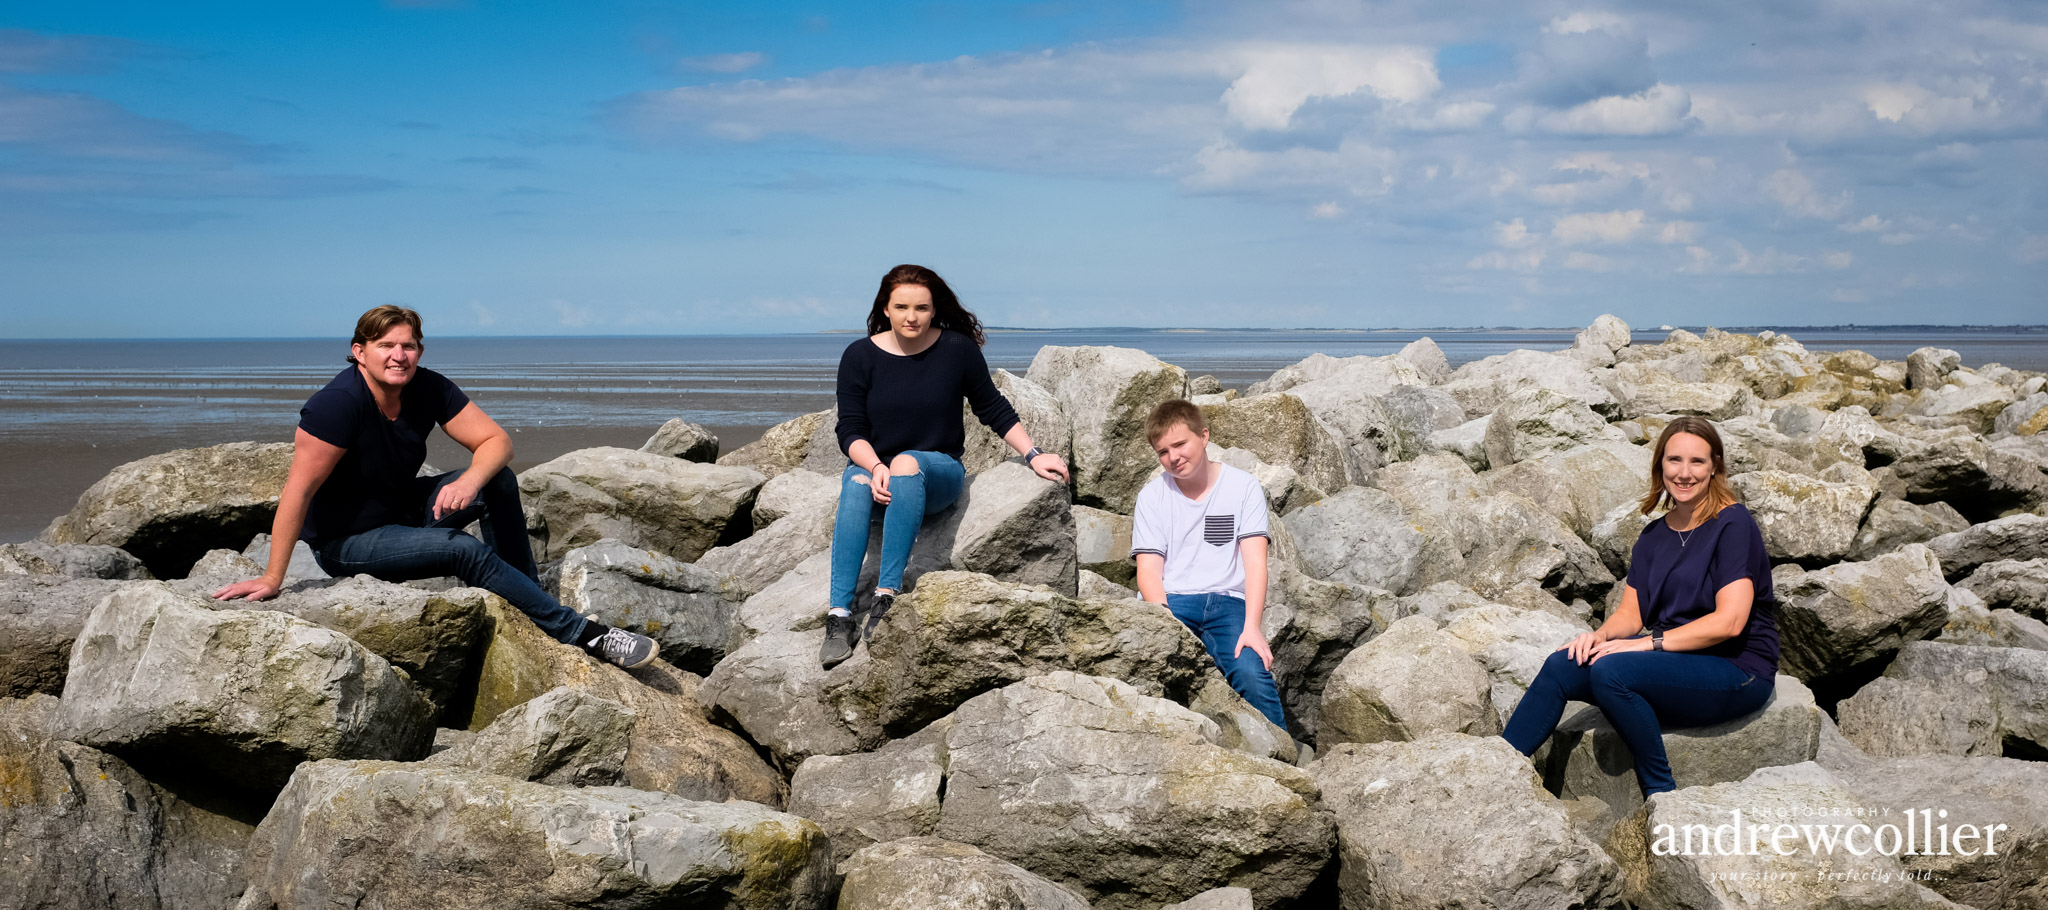 Summer family portraits on the Wirral Peninsula, Merseyside